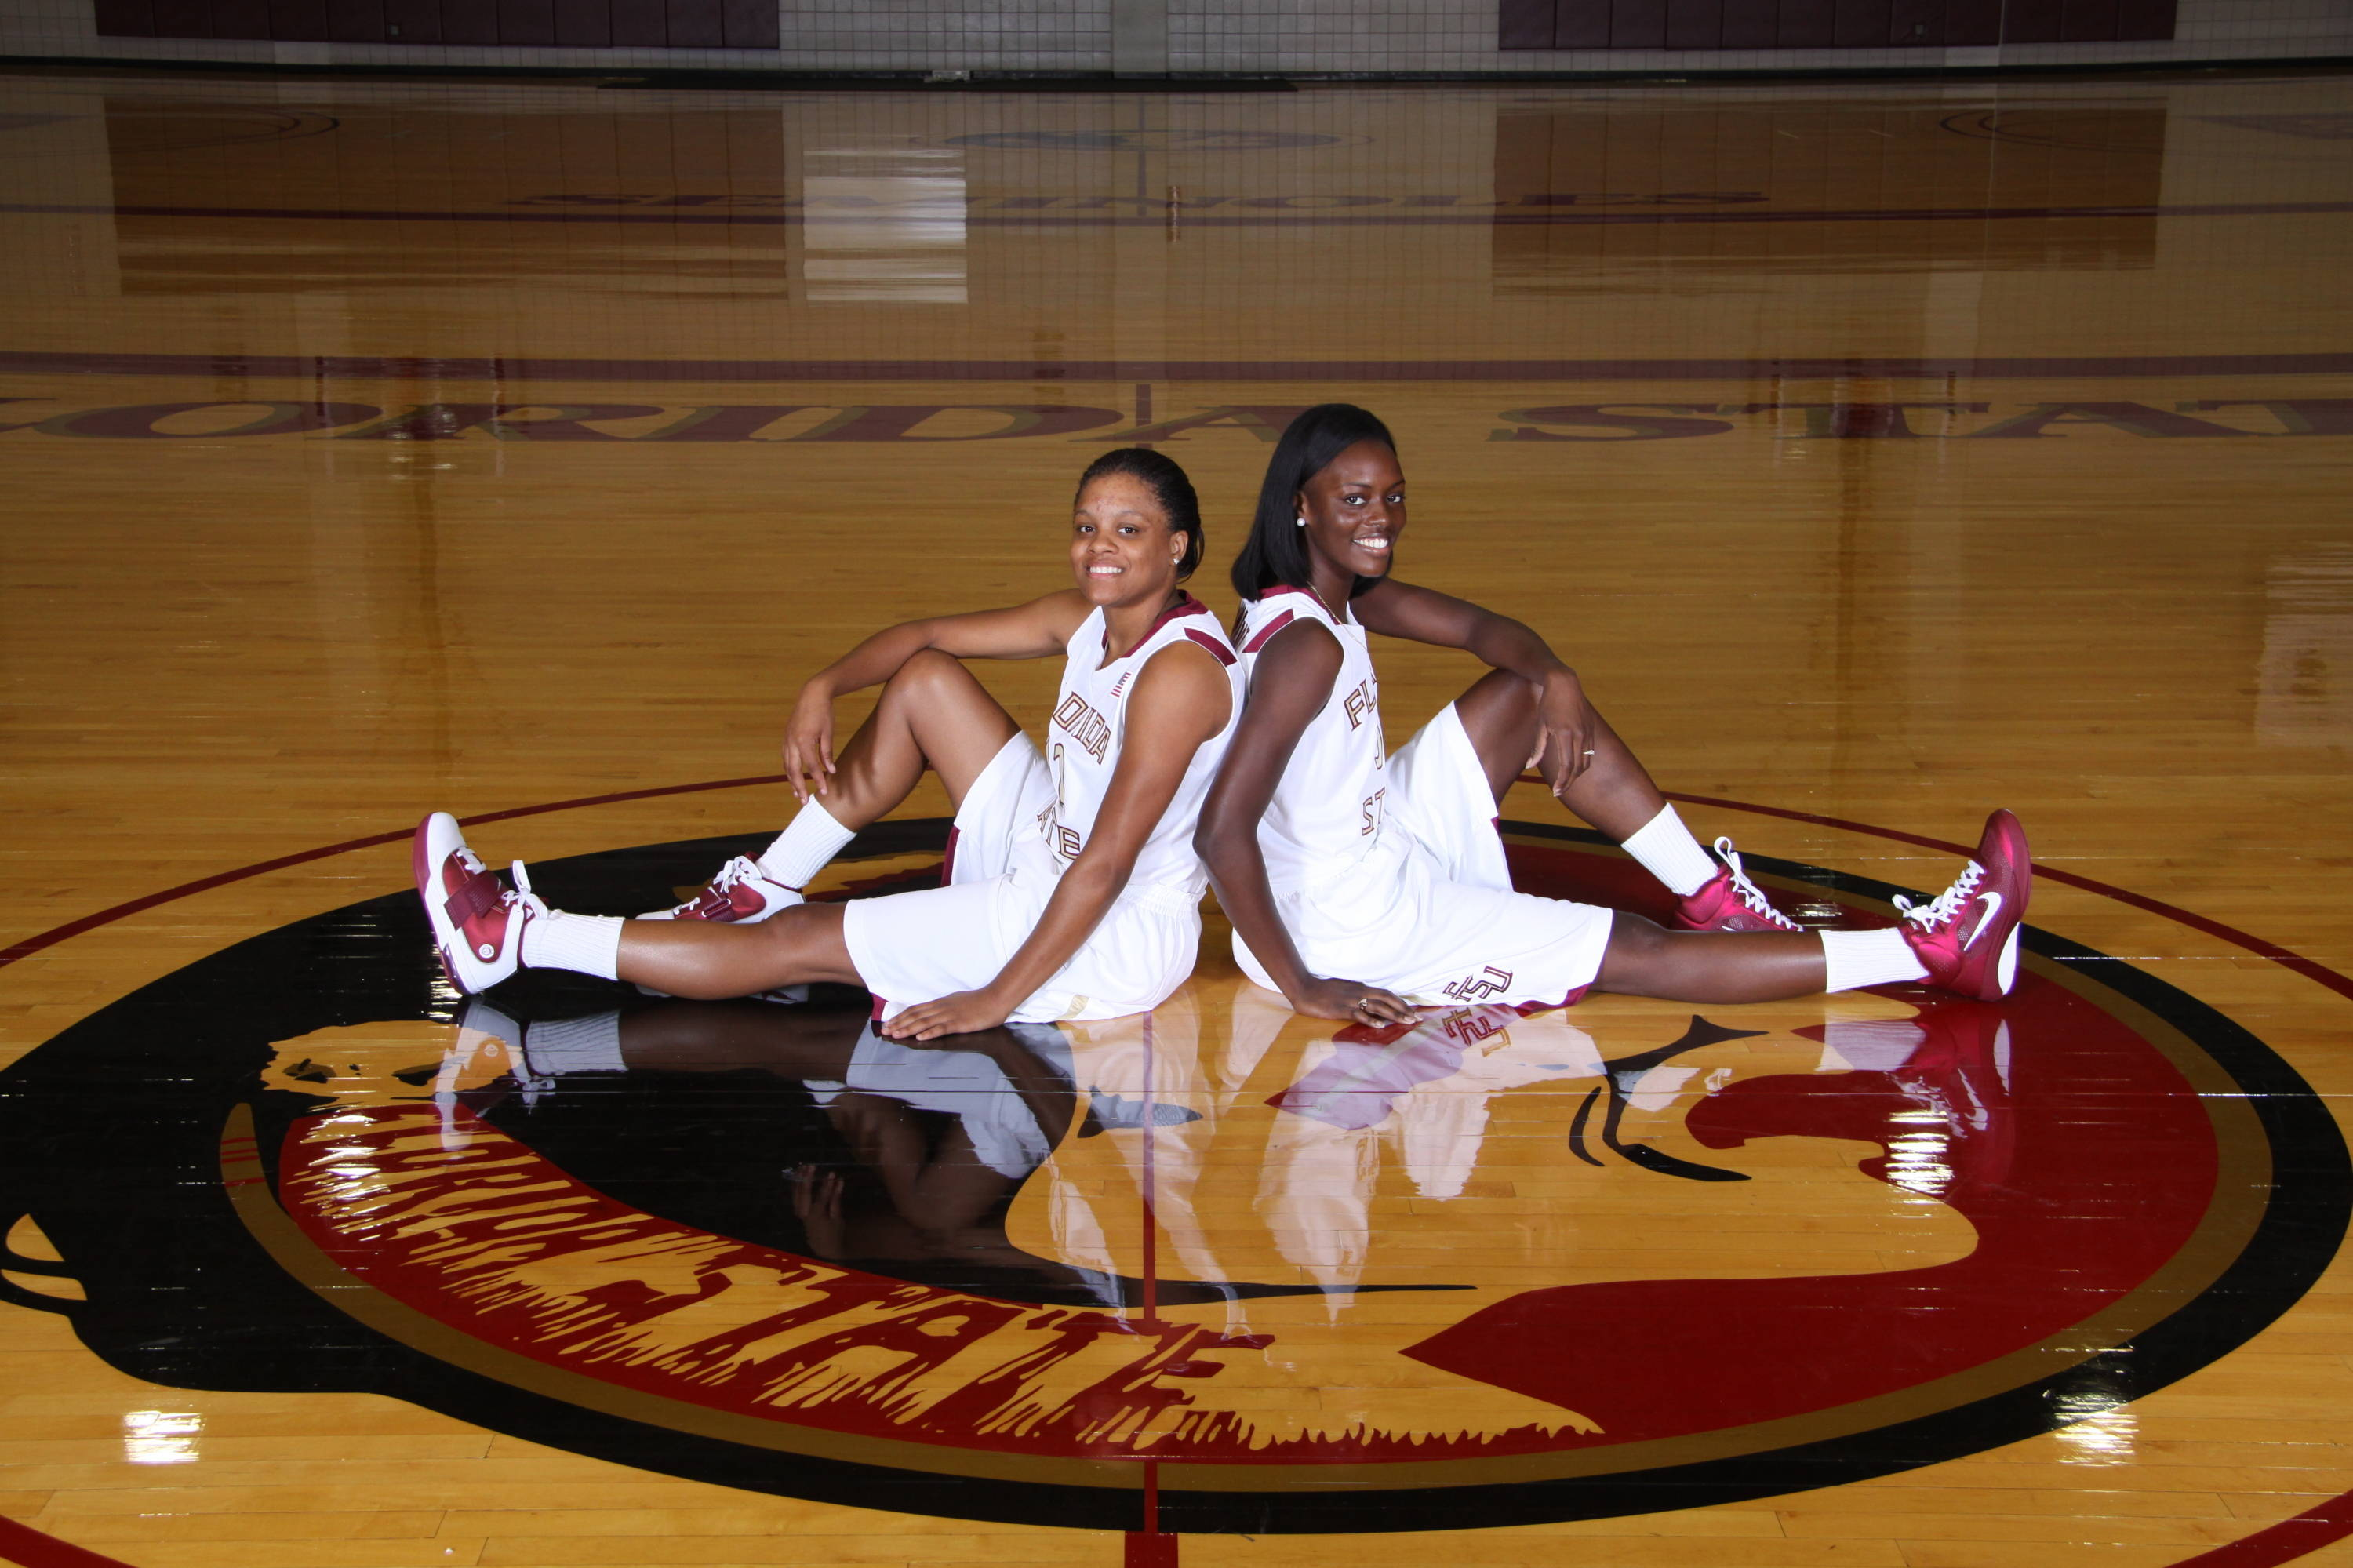 Sept. 27 ... The 2010-11 senior class: Courtney Ward and Christian Hunnicutt.